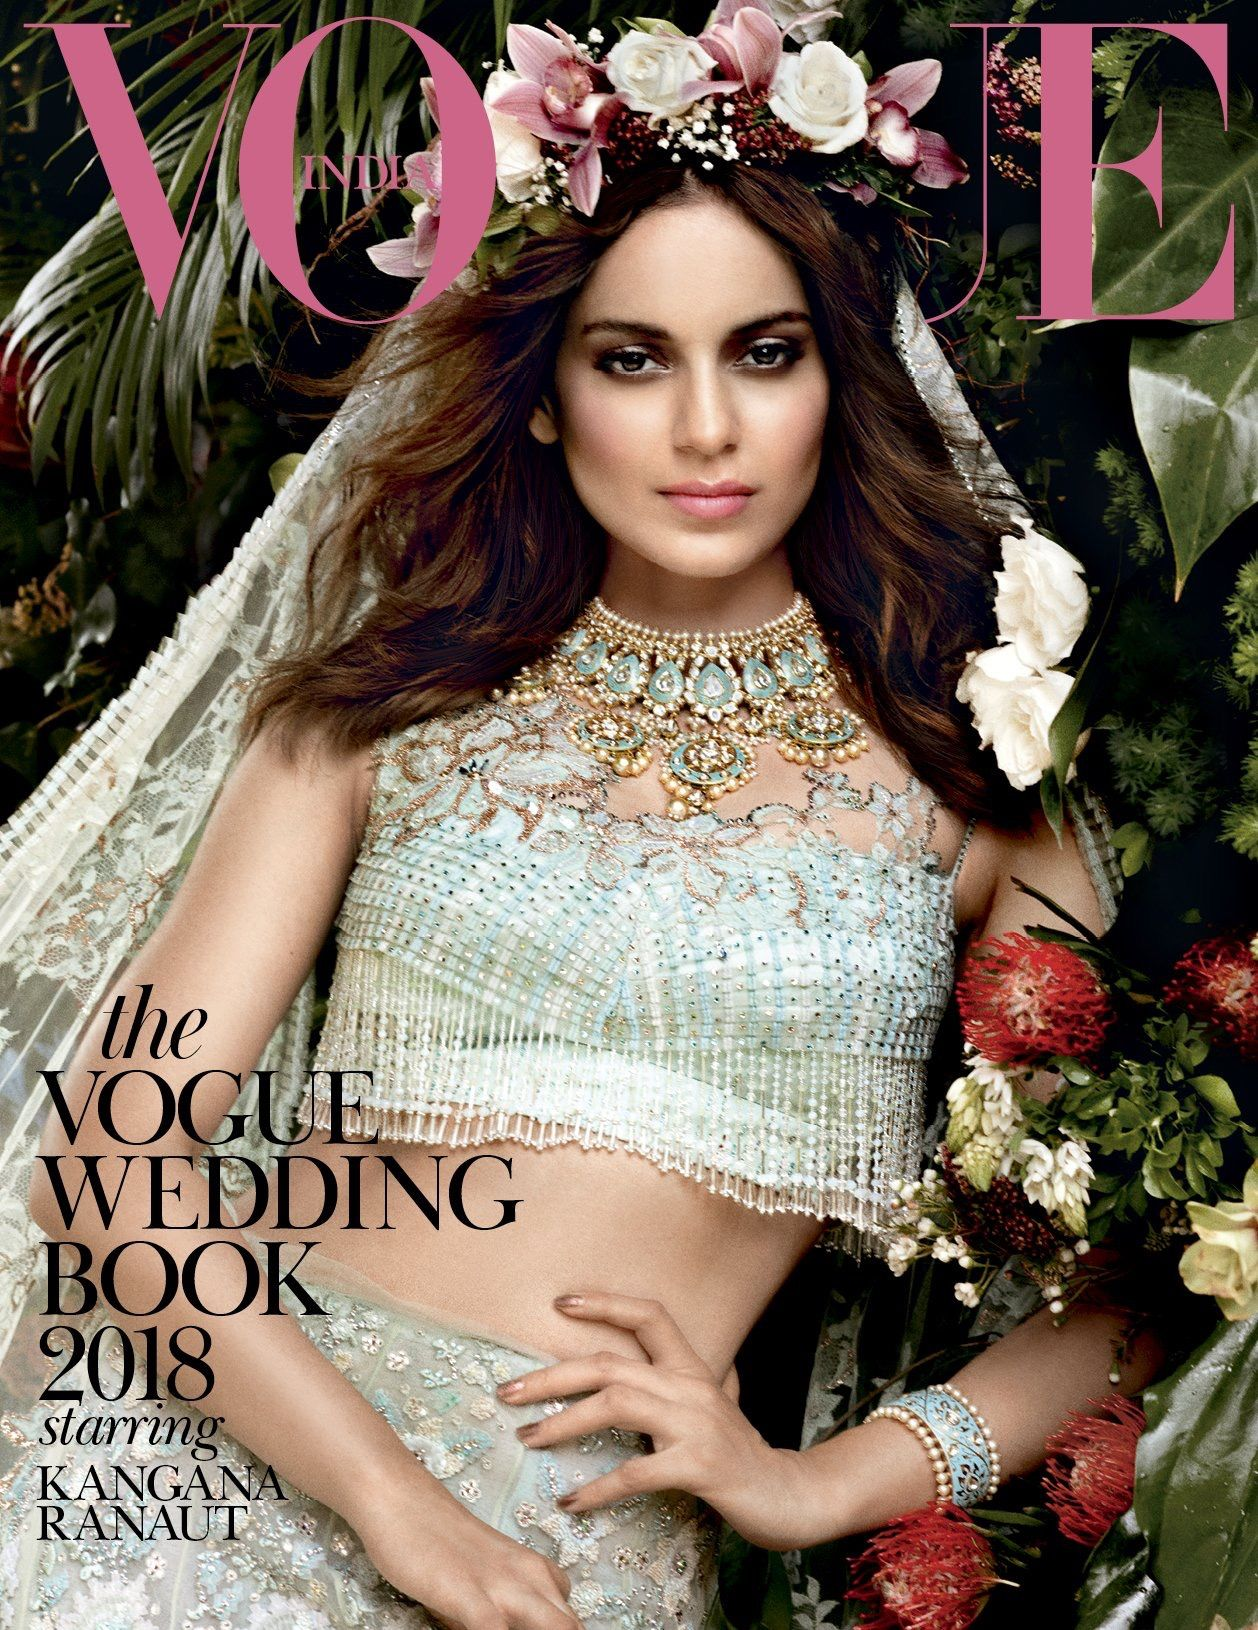 Pin By Joie On Vogue Wedding Magazine Cover Vogue Magazine Covers Vogue Magazine